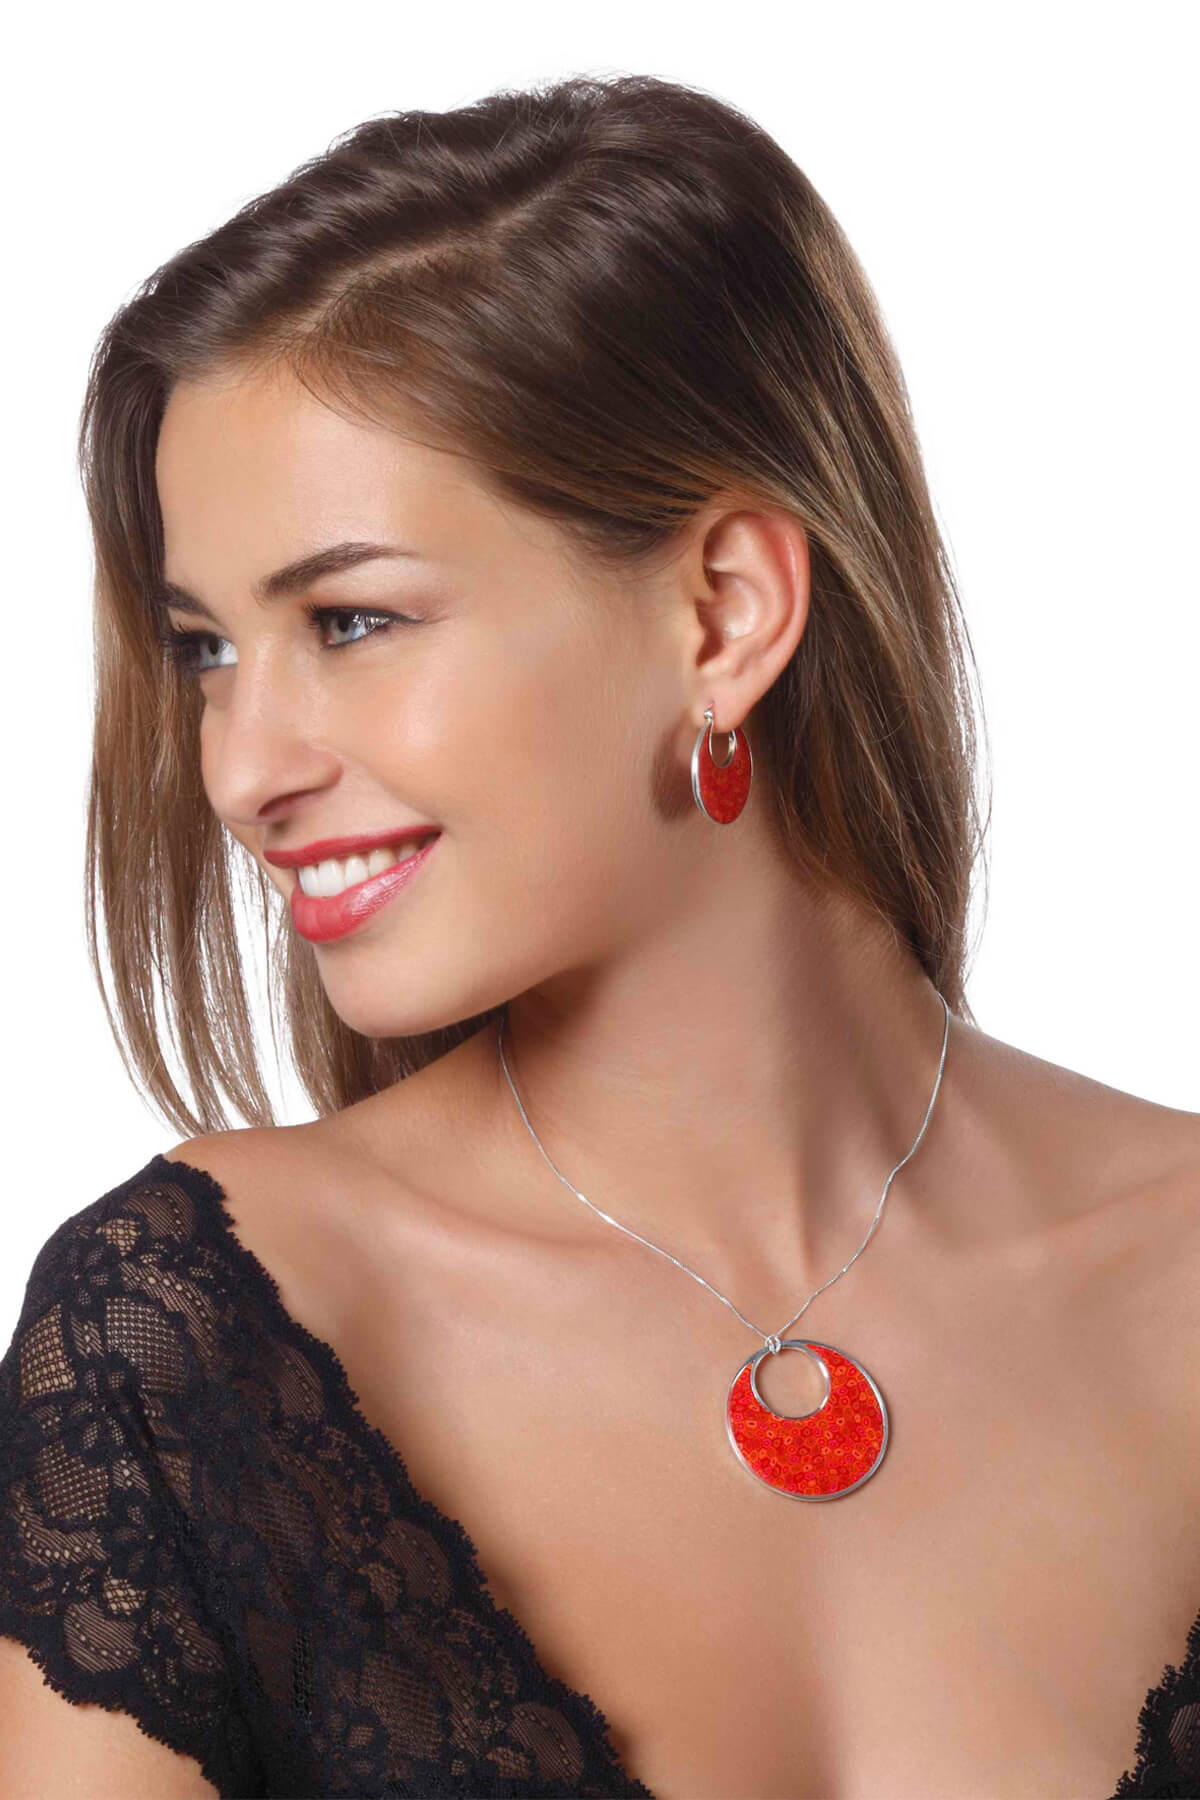 Handmade Silver Round Afro Hoop Earrings and Necklace – Red Coral Pattern